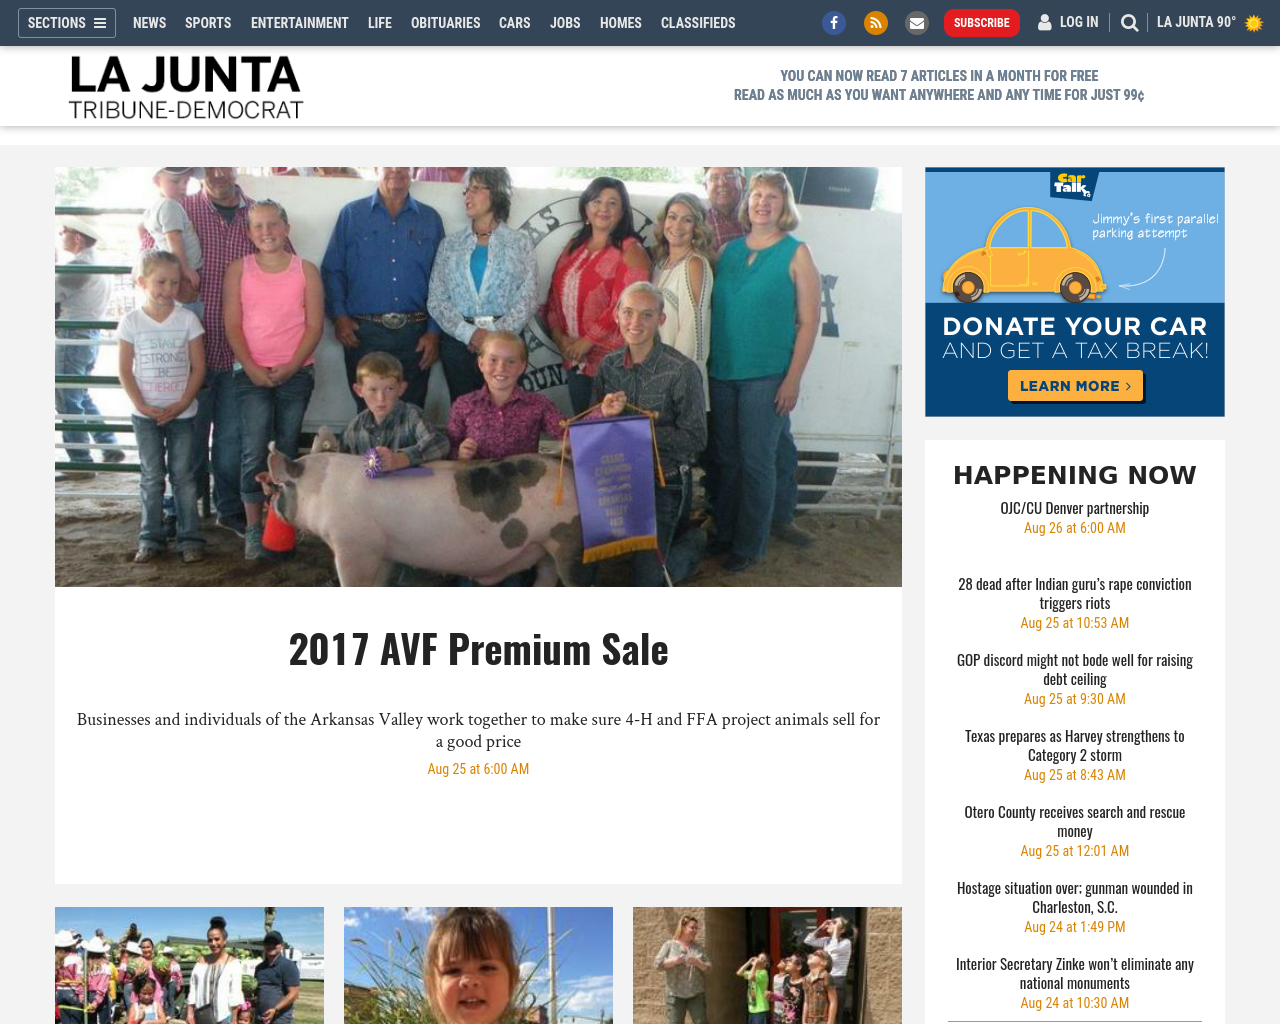 La-Junta-Tribune-Democrat.com-Advertising-Reviews-Pricing